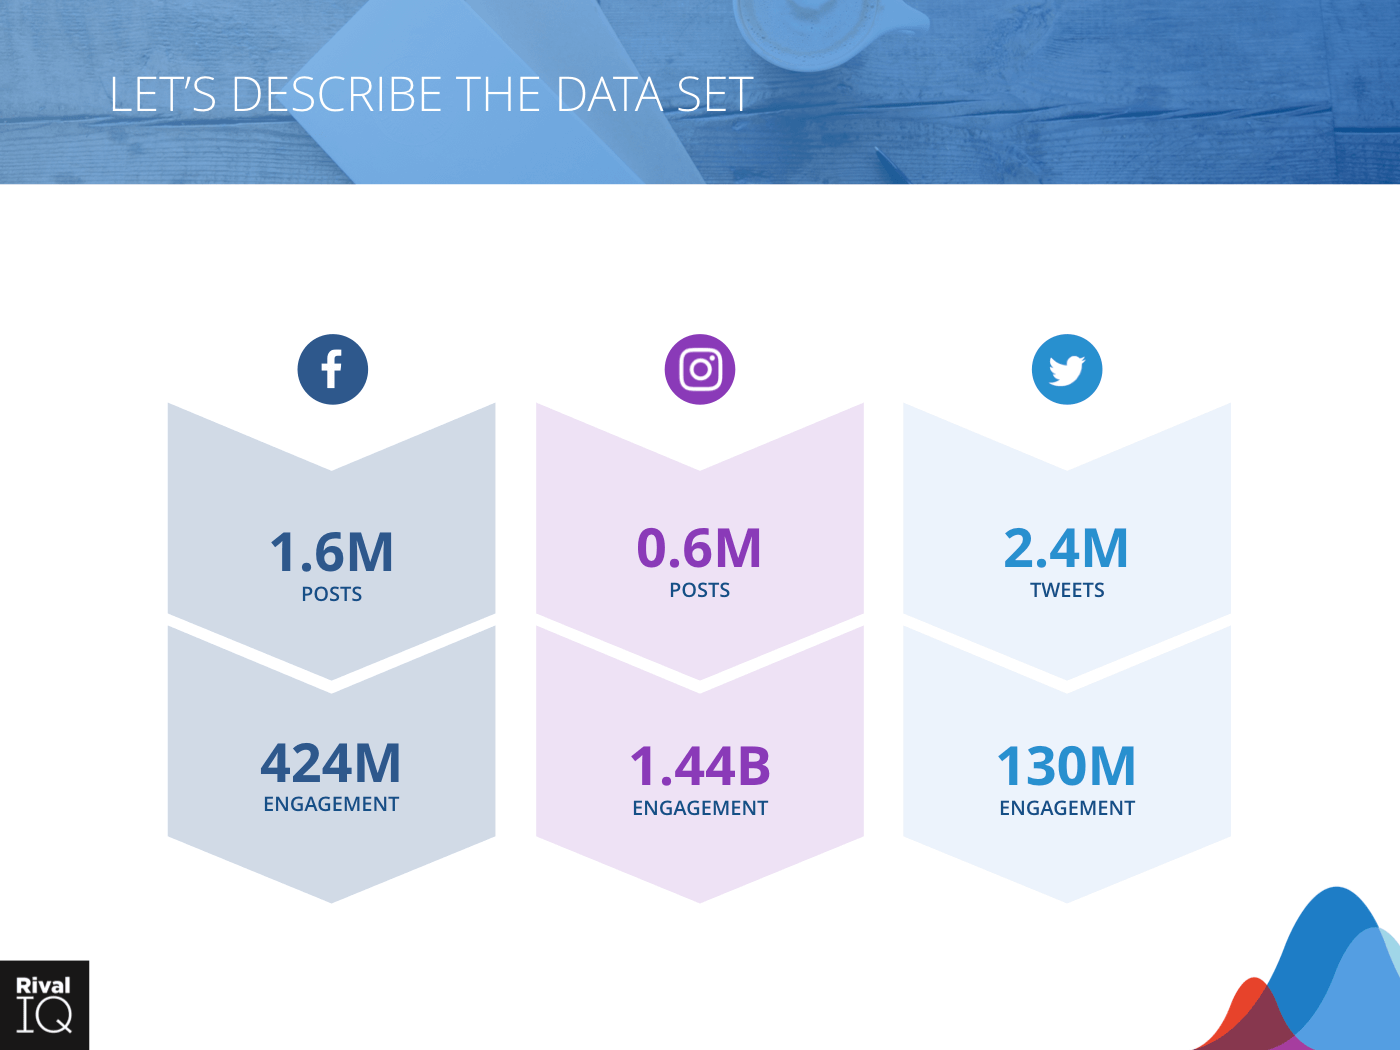 Post and engagement counts for Facebook, Instagram, and Twitter